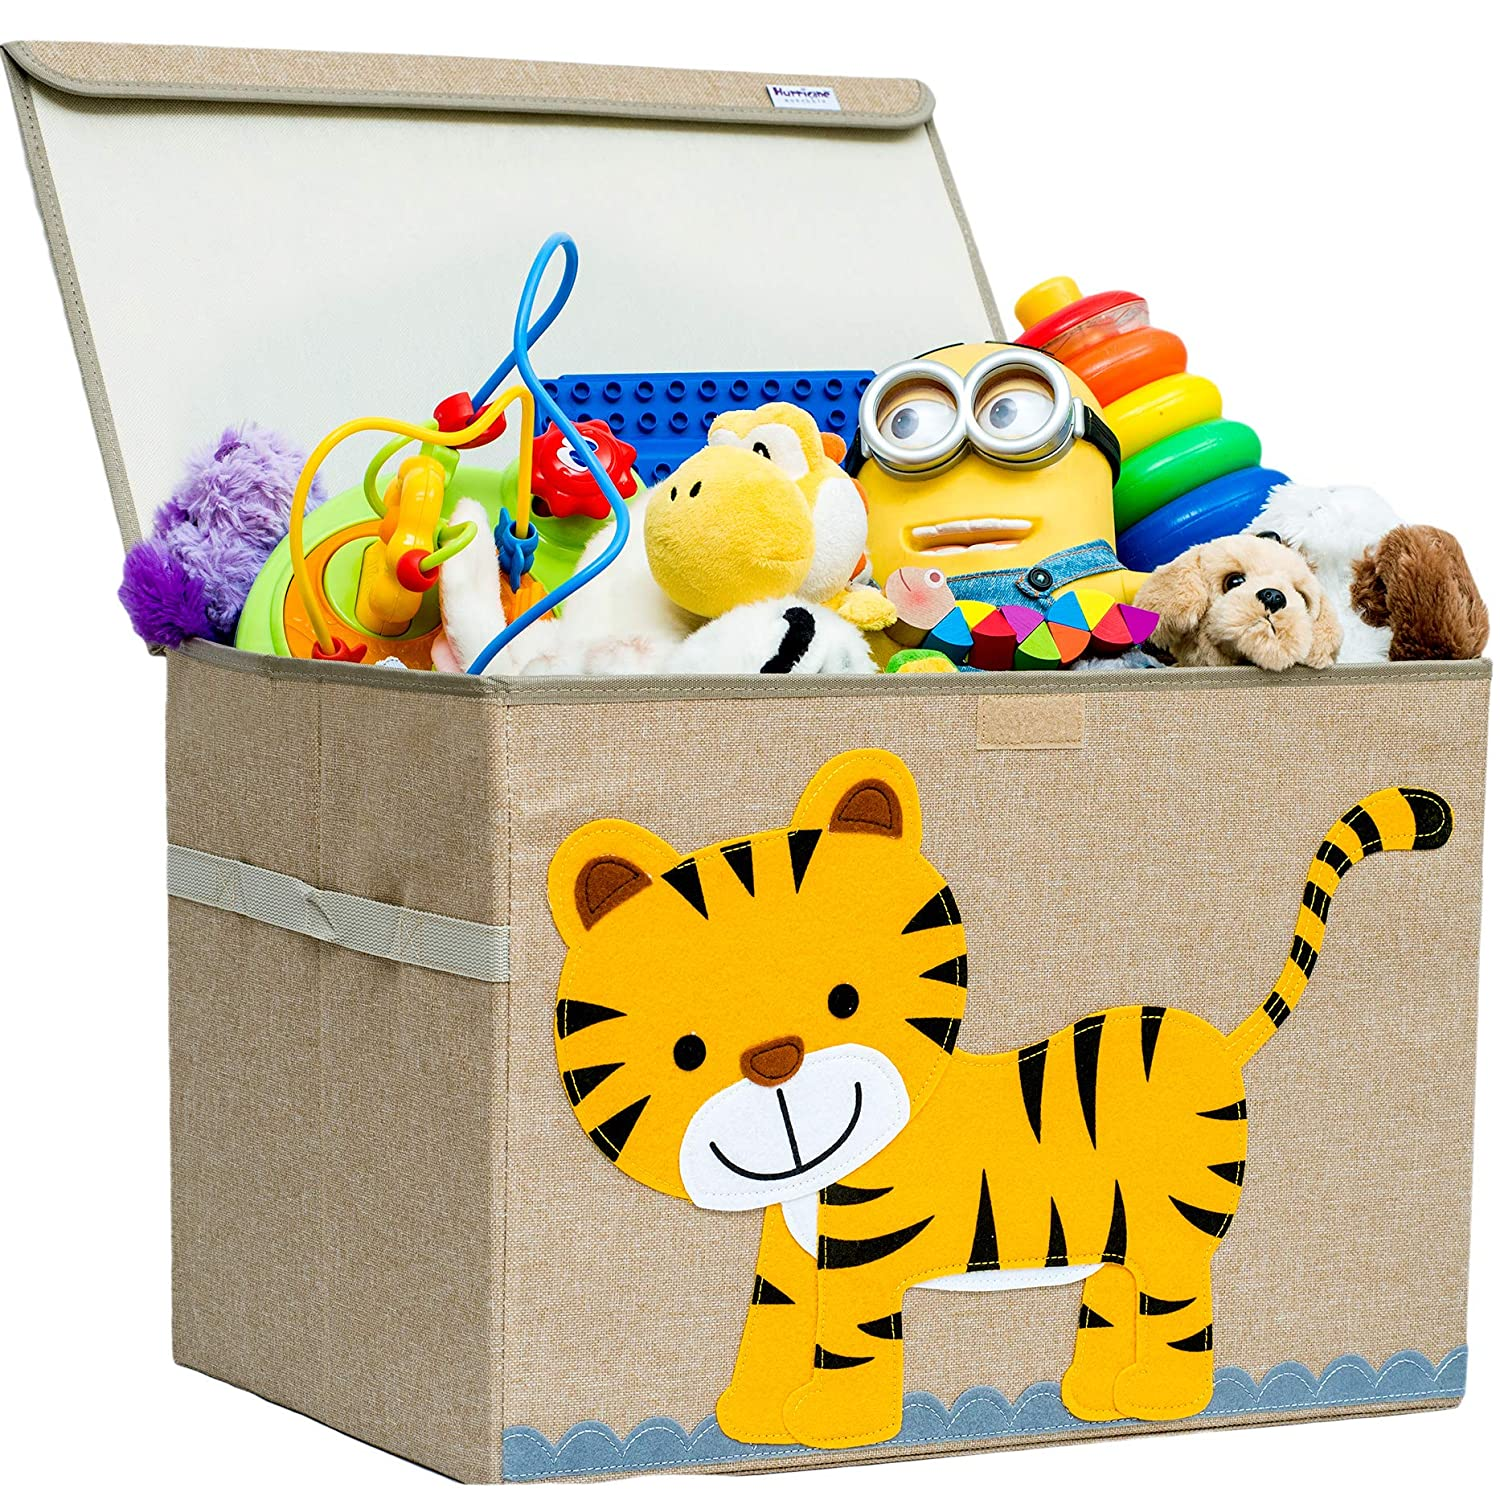 Hurricane Munchkin Large Toy Chest Plush Toys Elephant Canvas Soft Toy Basket Bin Organizer with Lid for Children Books and Clothes| Kids Storage Toy Box for Boys Girls |Measures 14x 15 x 21